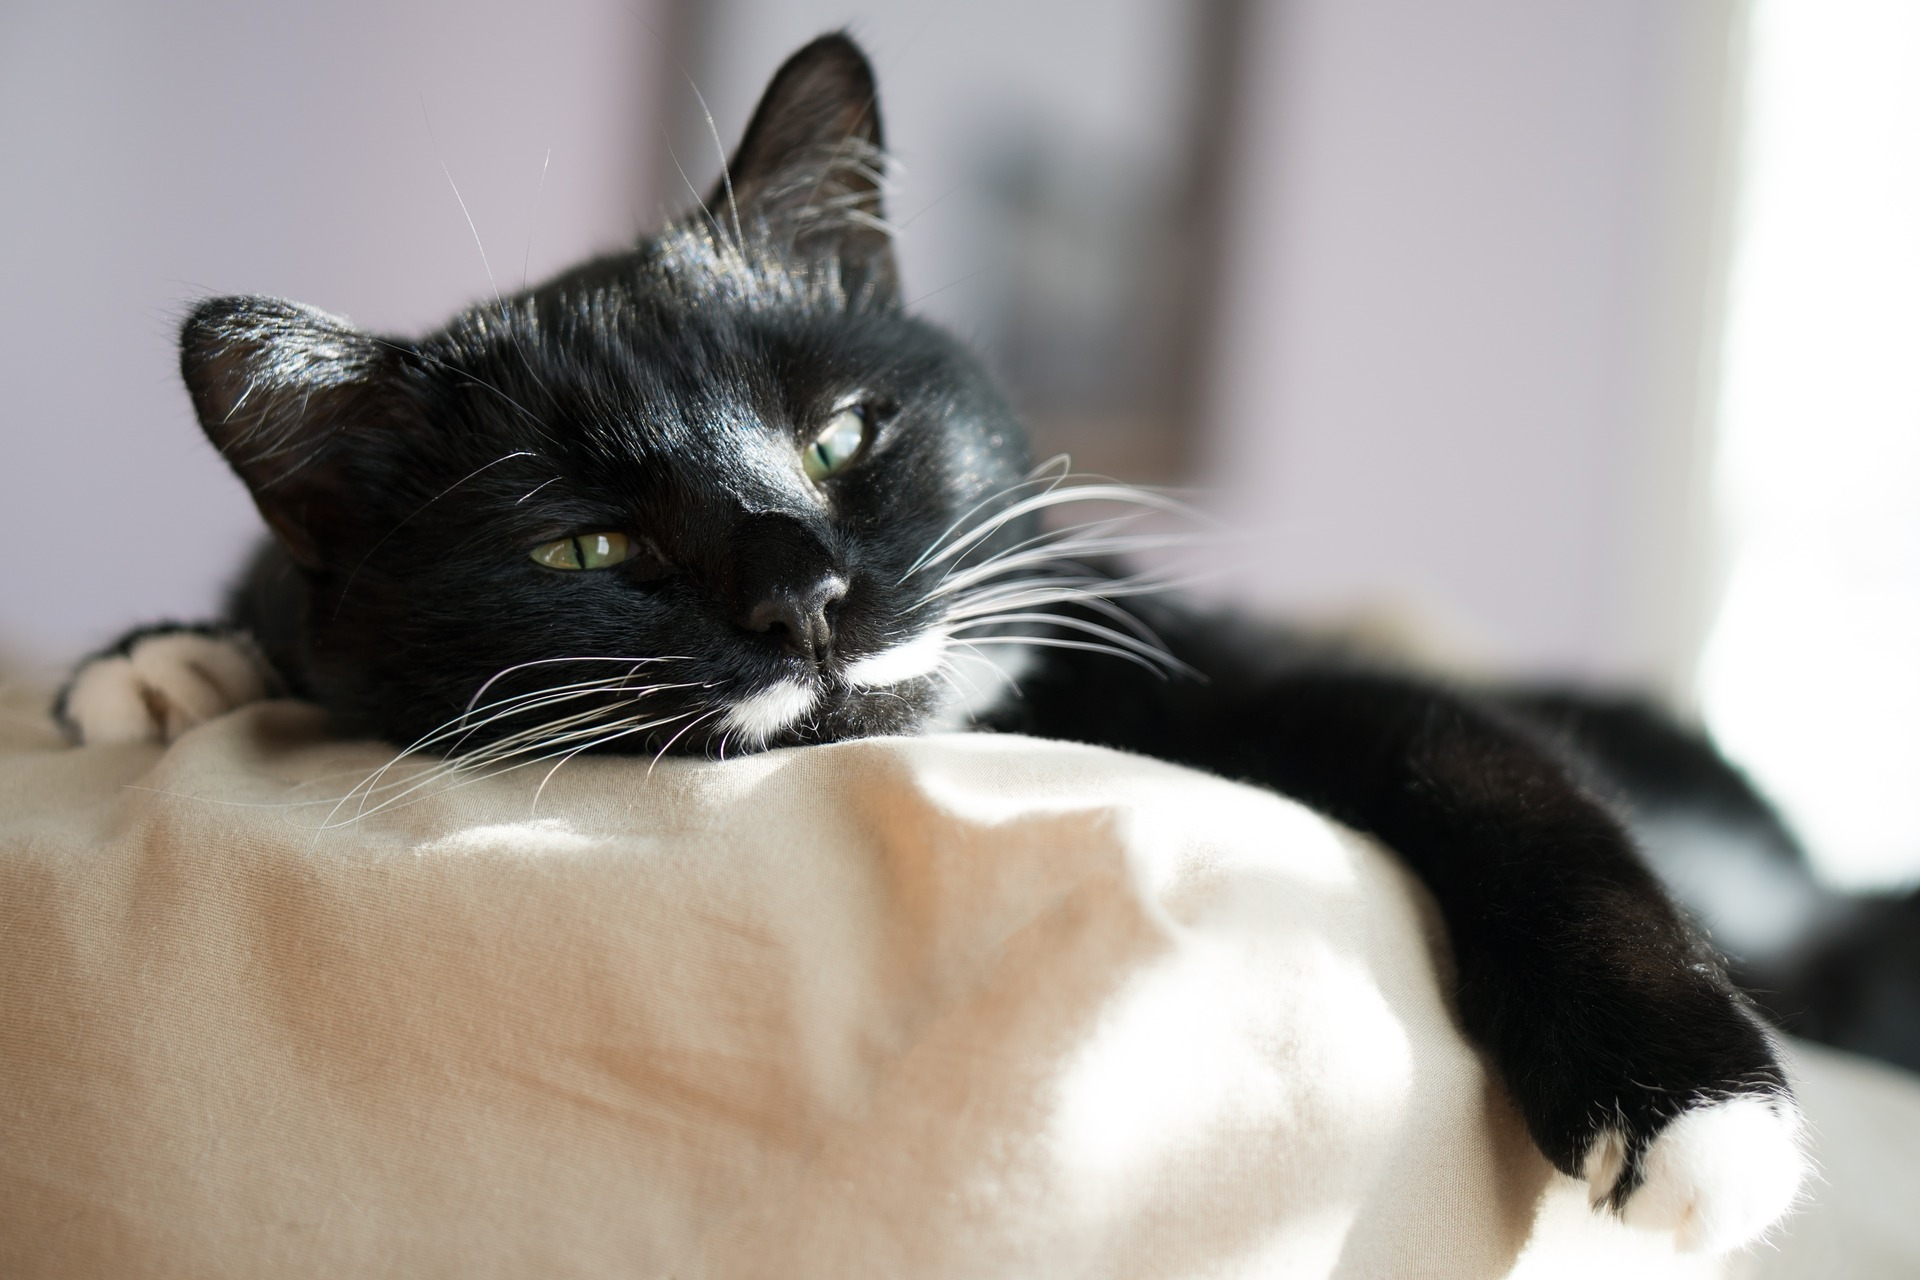 sleepy black cat with white paws napping on clean sheets